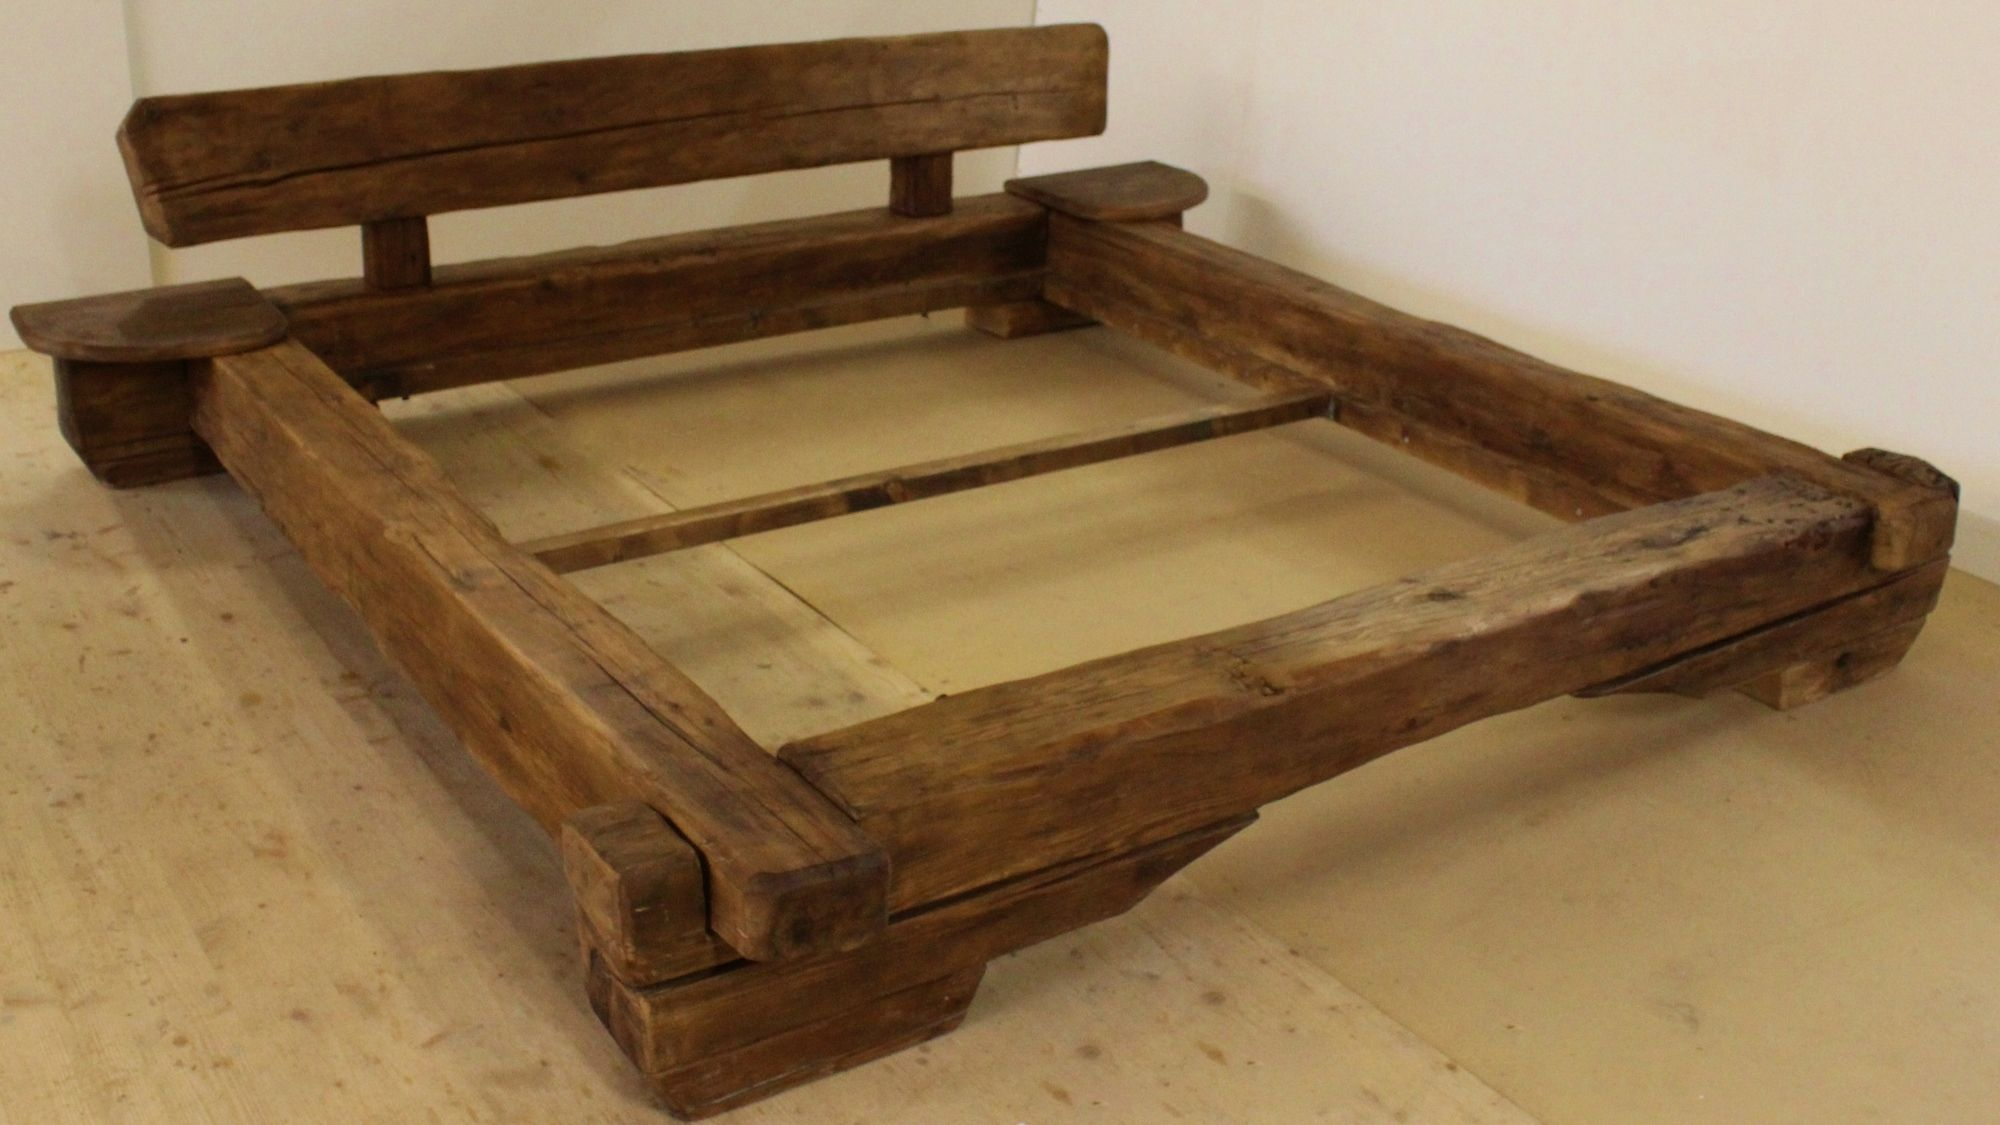 Related Image Rustic Bed Frame Rustic Furniture Bed Furniture